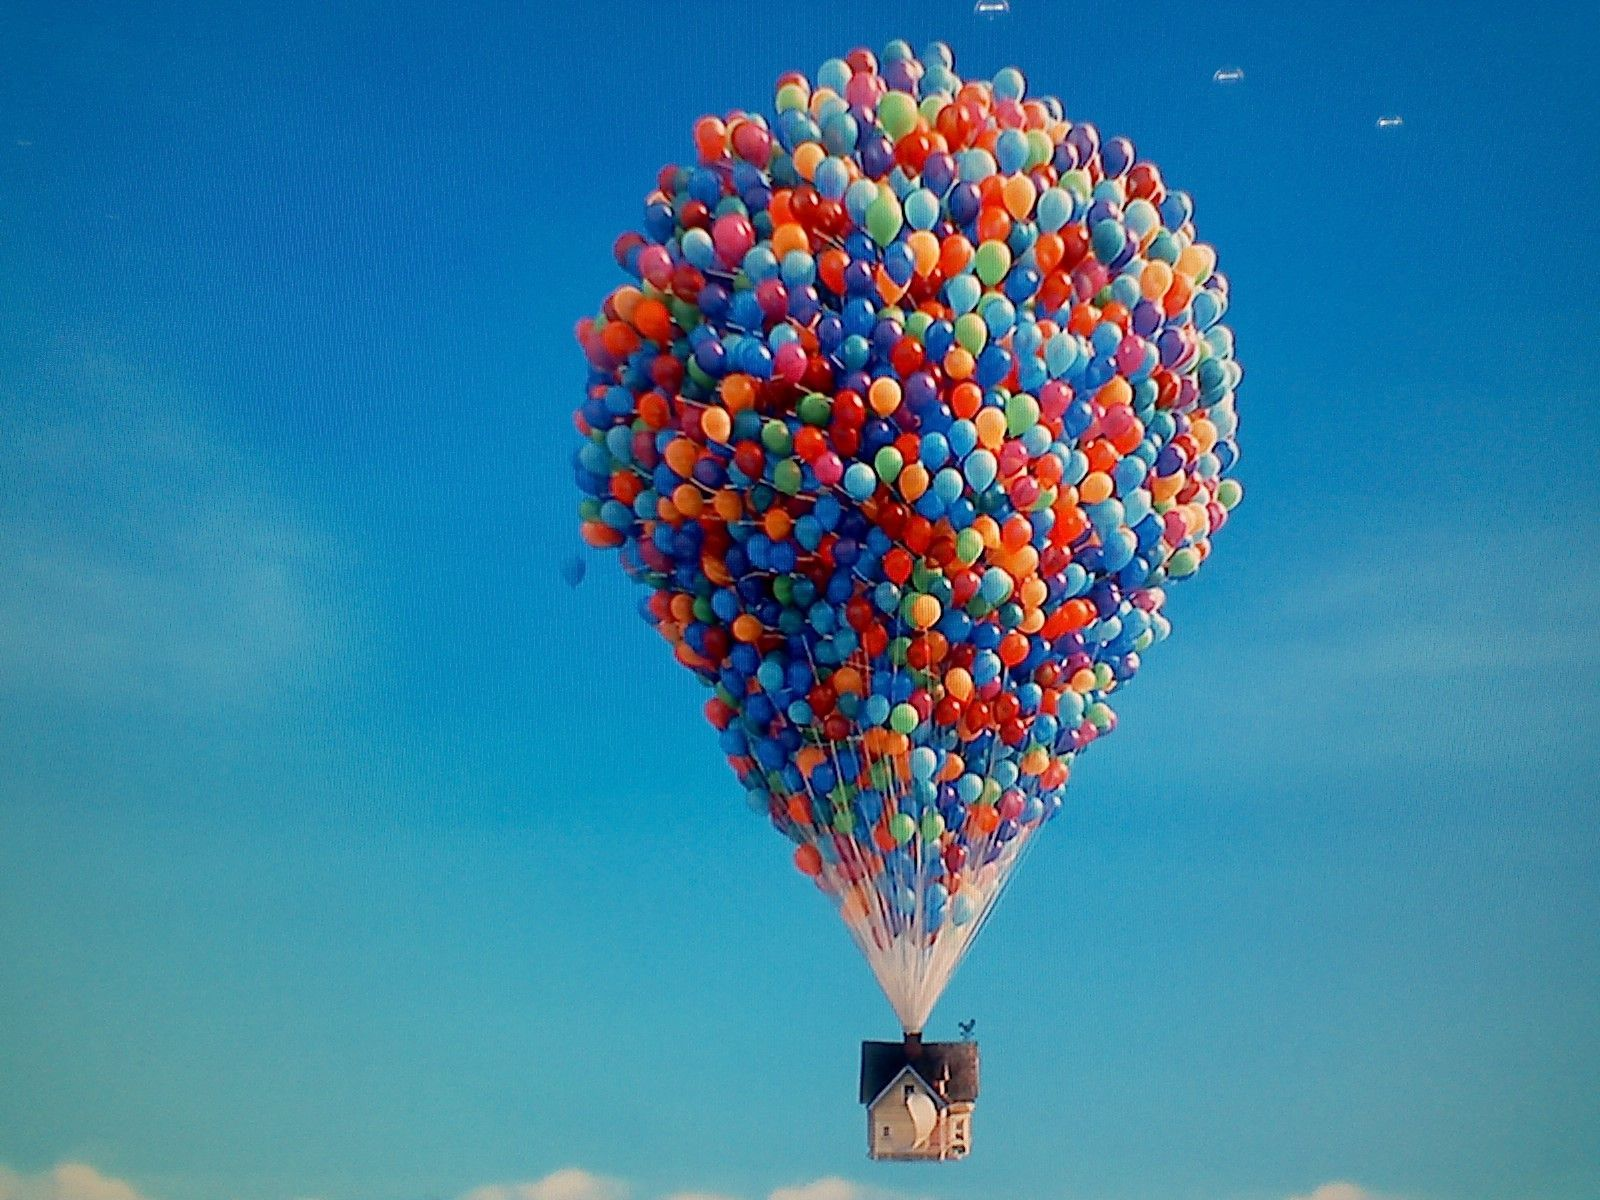 Iphone 7 Wallpaper Size Wallpapers Balloon Group 71